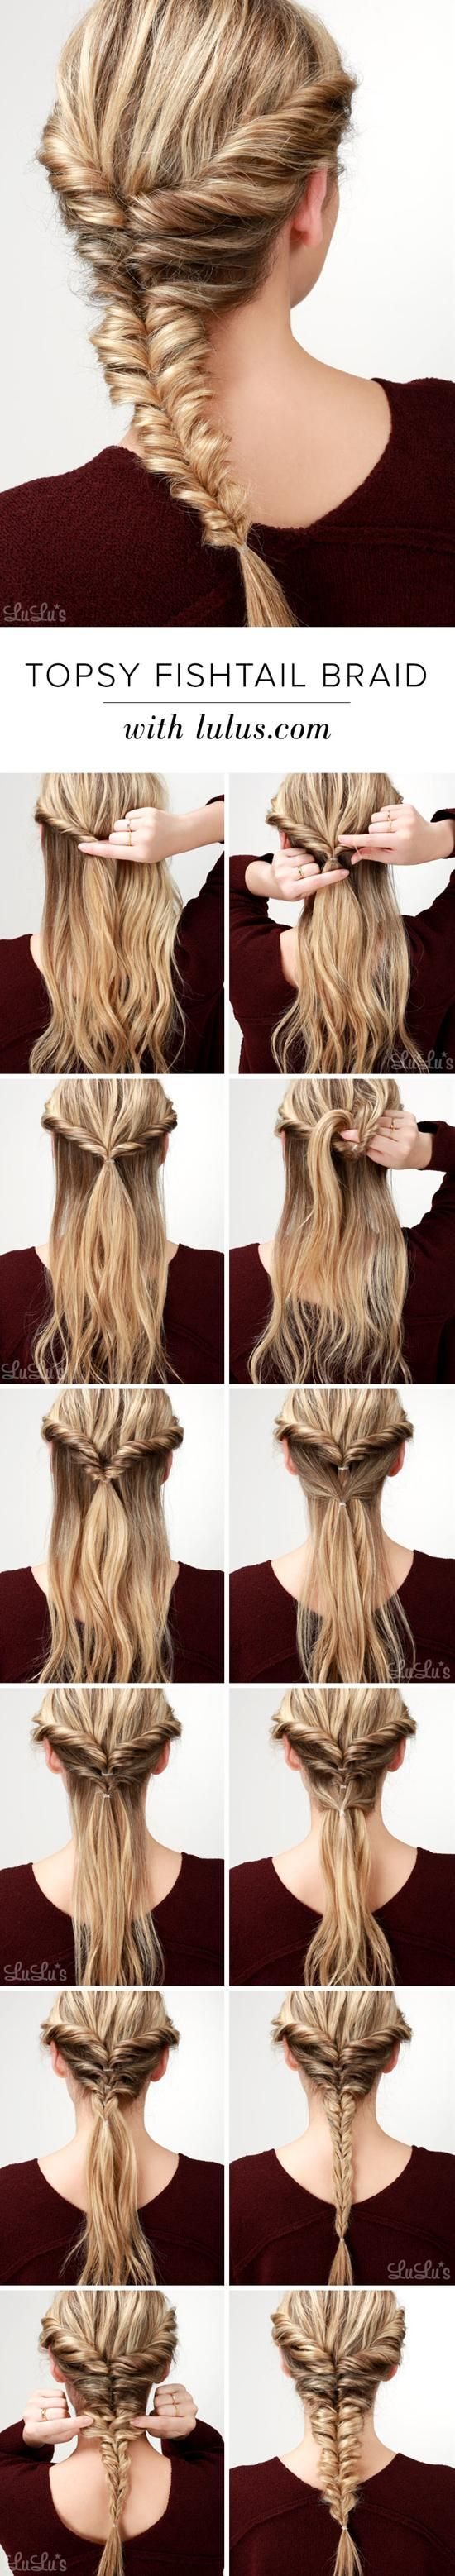 Are you sick of just straightening or curling your hair to make it look glamorou...